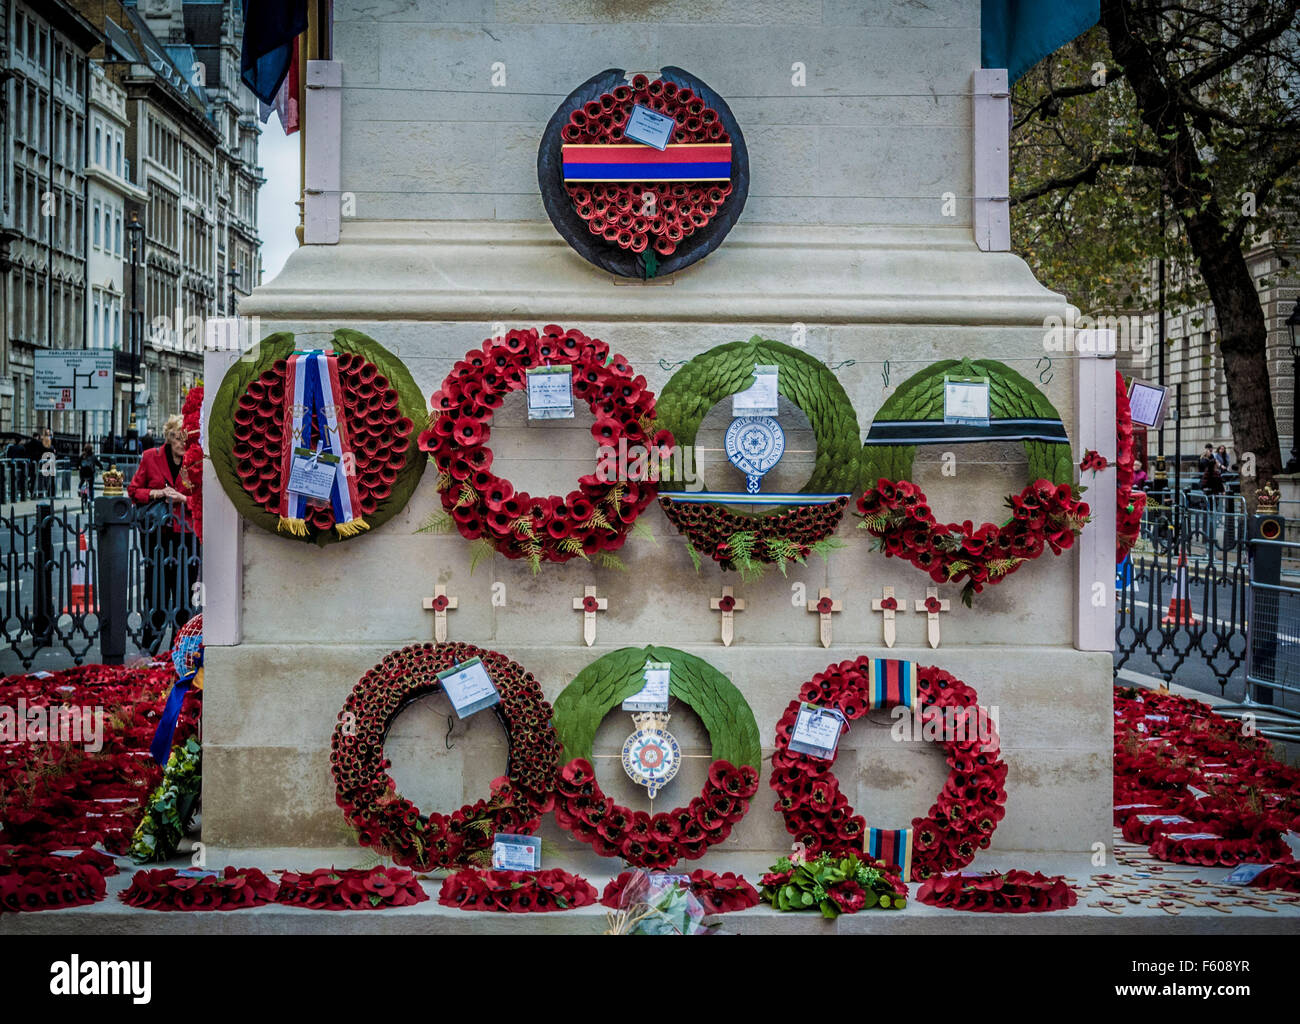 London, UK. 9th November, 2015.  Poppy wreaths at the Cenotaph for Remembrance Day.  Bailey-Cooper Photography/Alamy - Stock Image